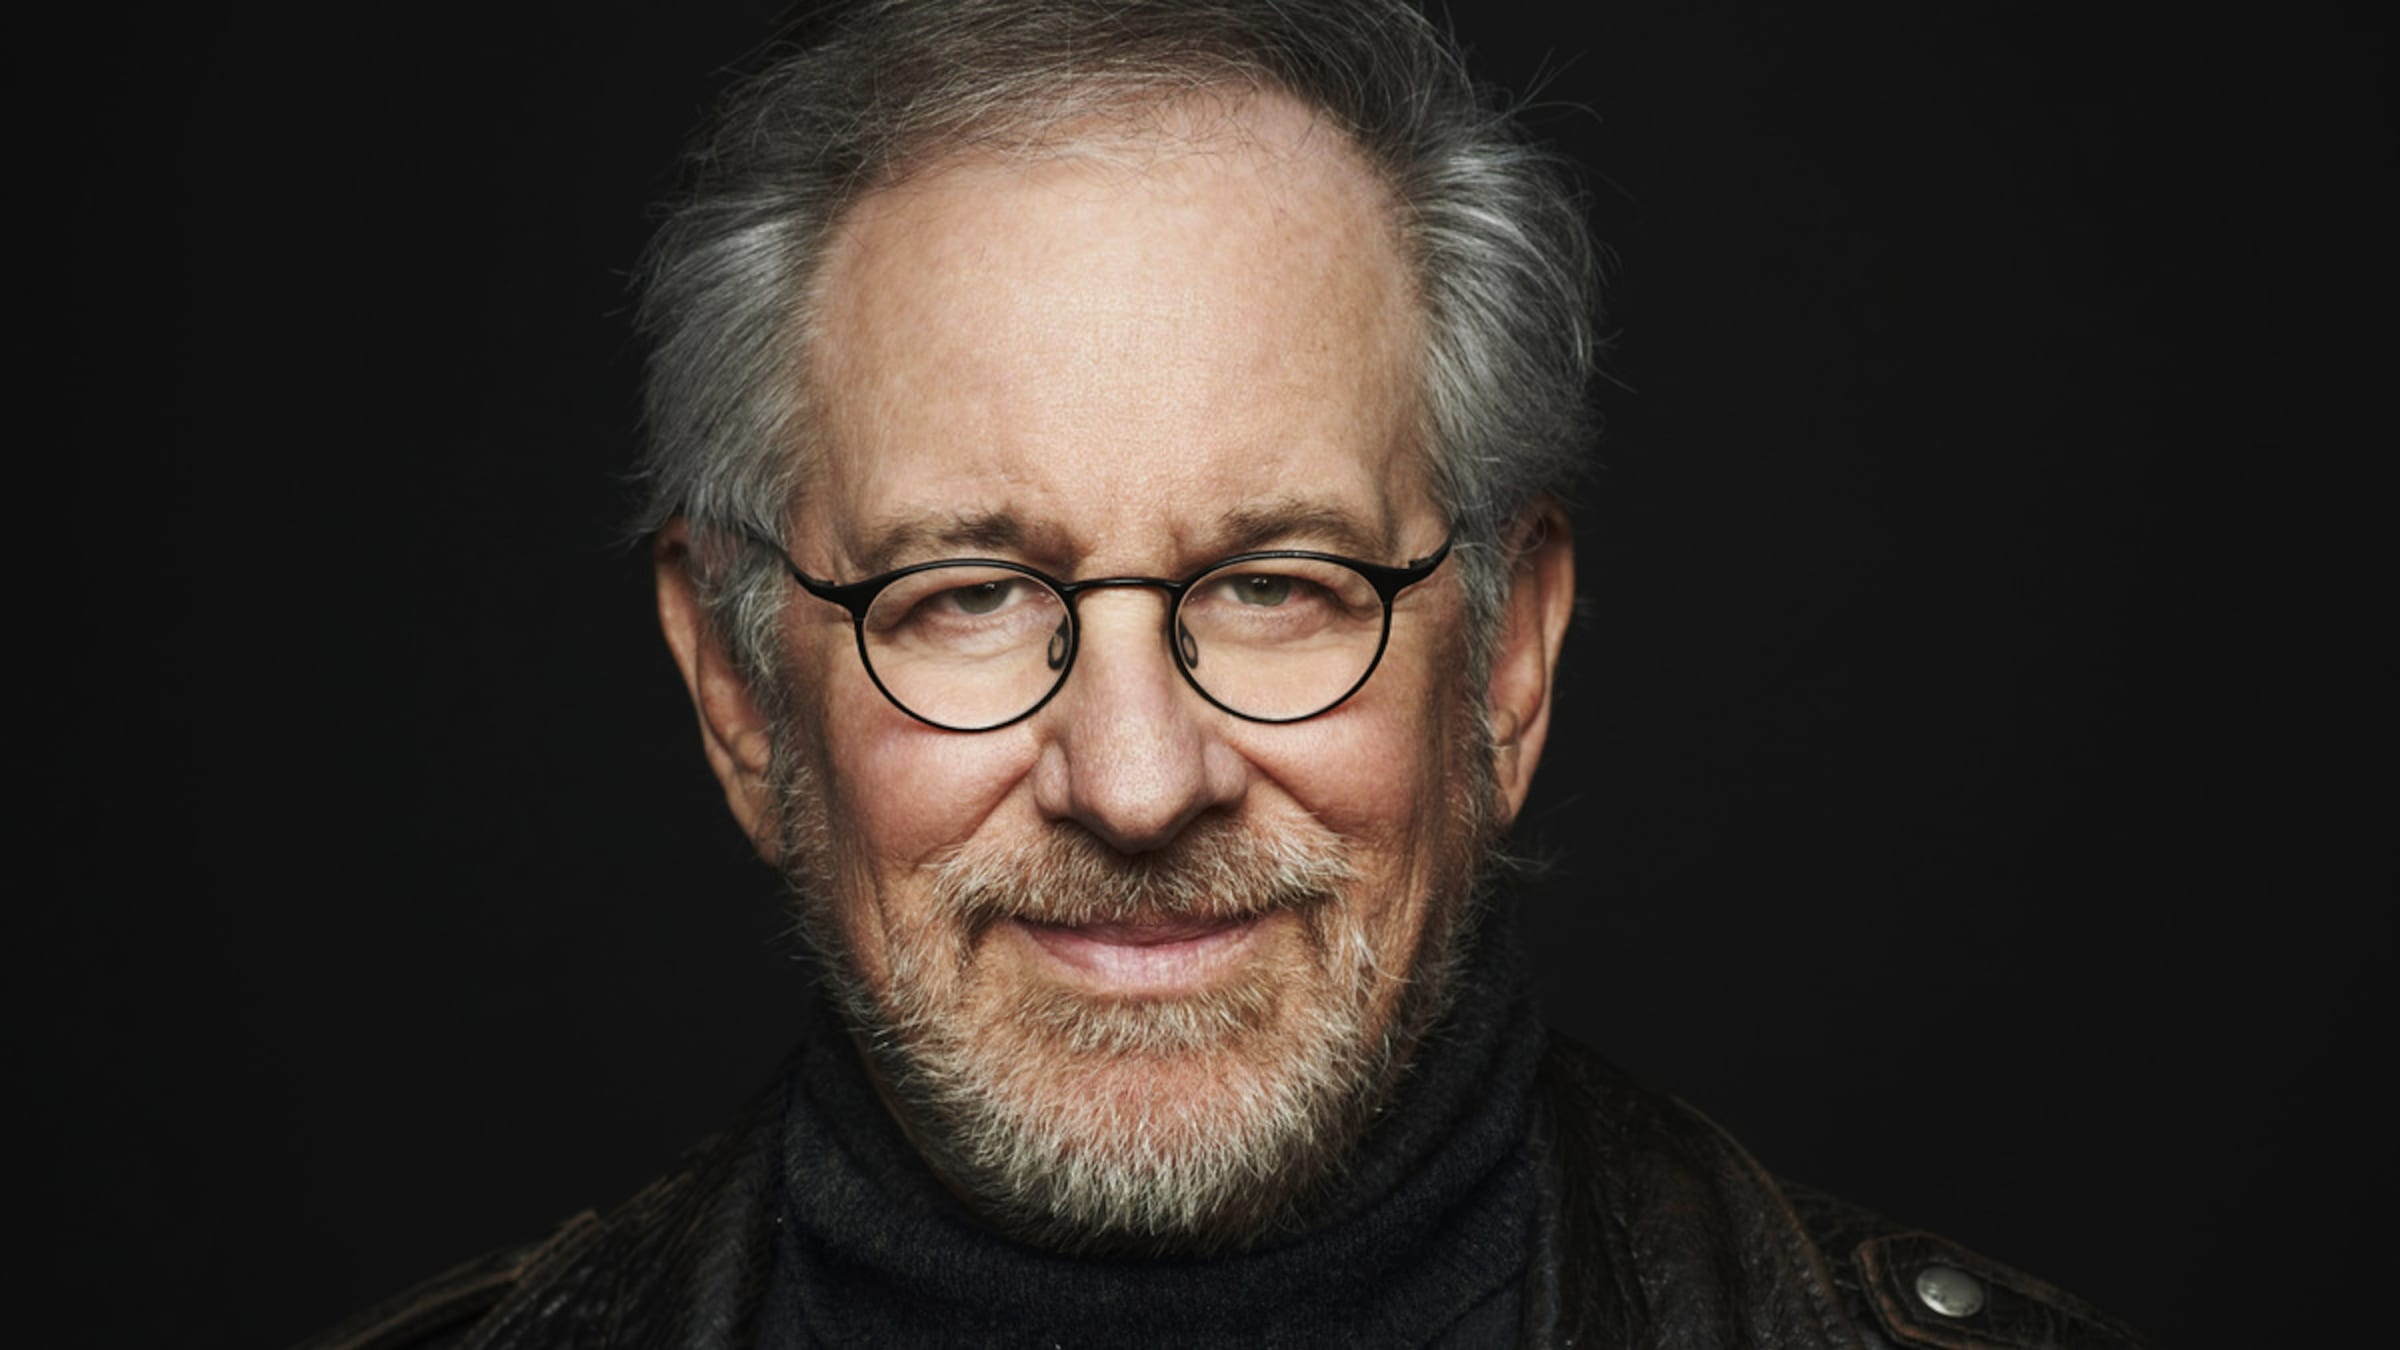 'Why We Hate': Steven Spielberg Battles White Supremacy in the Age of Trump